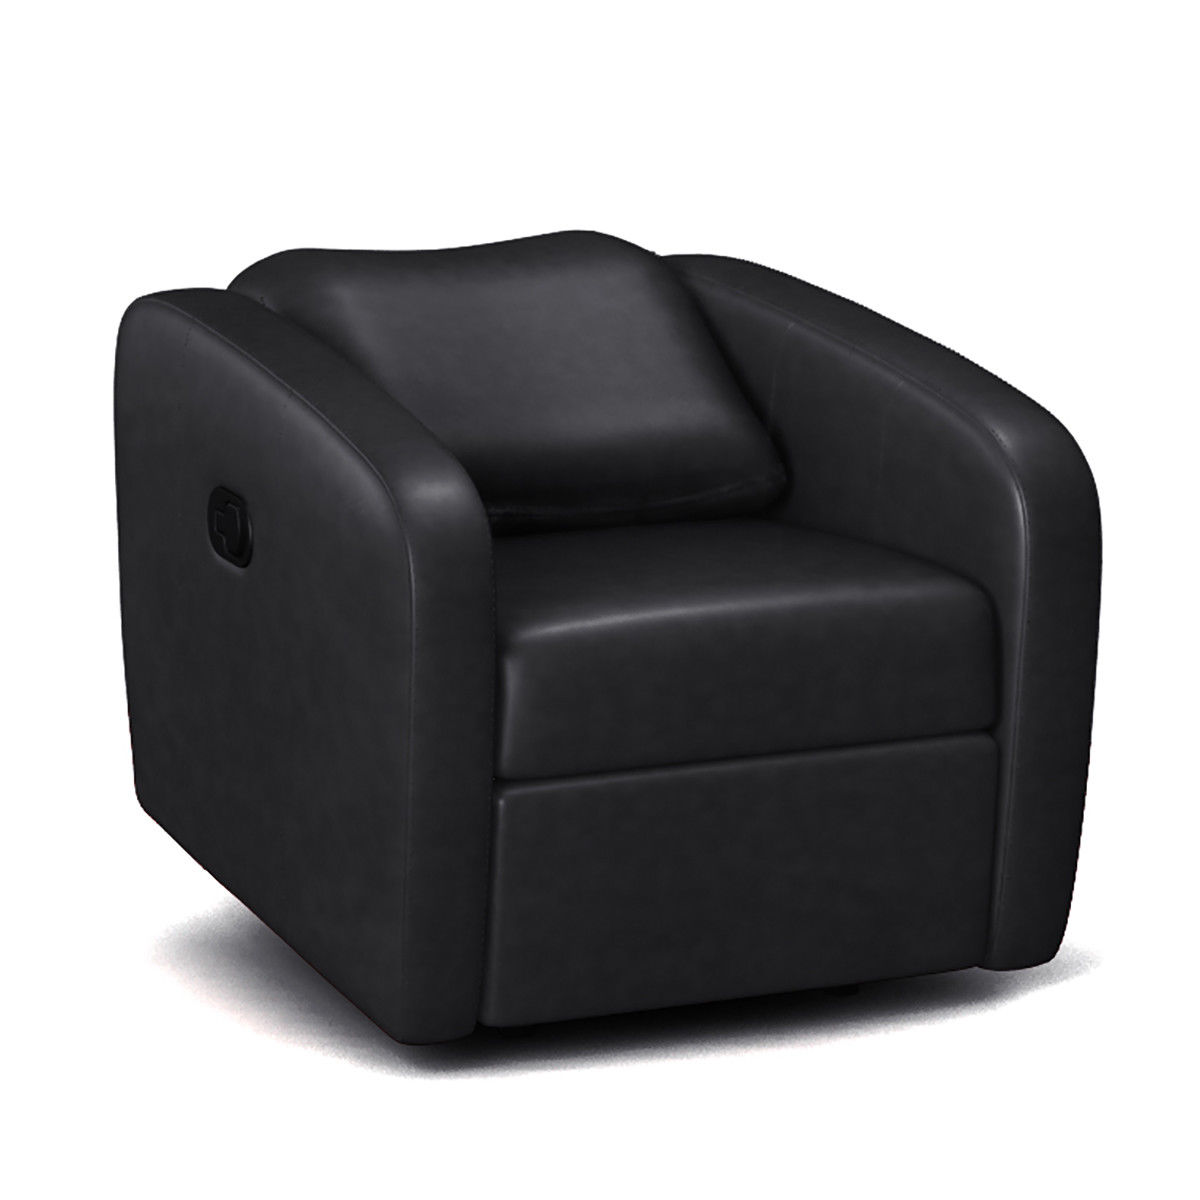 Accent Meuble Fauteuil Inclinable Manual Recliner Chair Contemporary Foldable Back Leather Reclining Chair Sofa